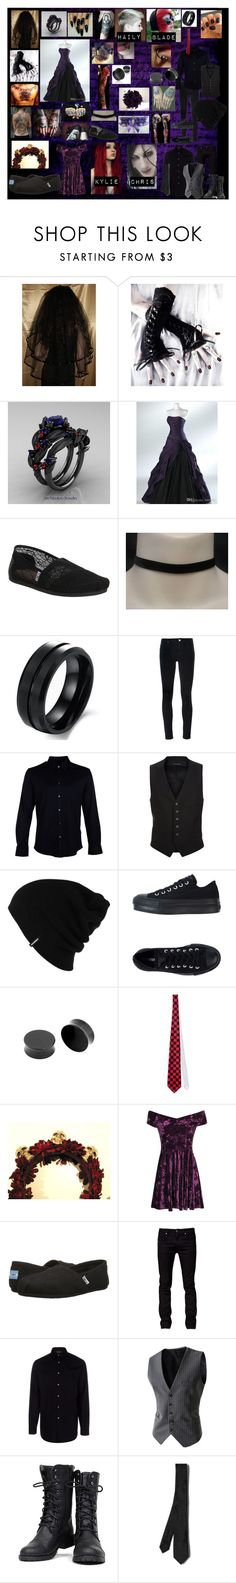 """my sister married chris motionless's brother?!?!?!?"" by newmotionlessjinxxgamer ❤ liked on Polyvore featuring KURO, TOMS, Tenri, IRO, Gucci, Tom Ford, Patagonia, Converse, Tiger of Sweden and Paul Smith"